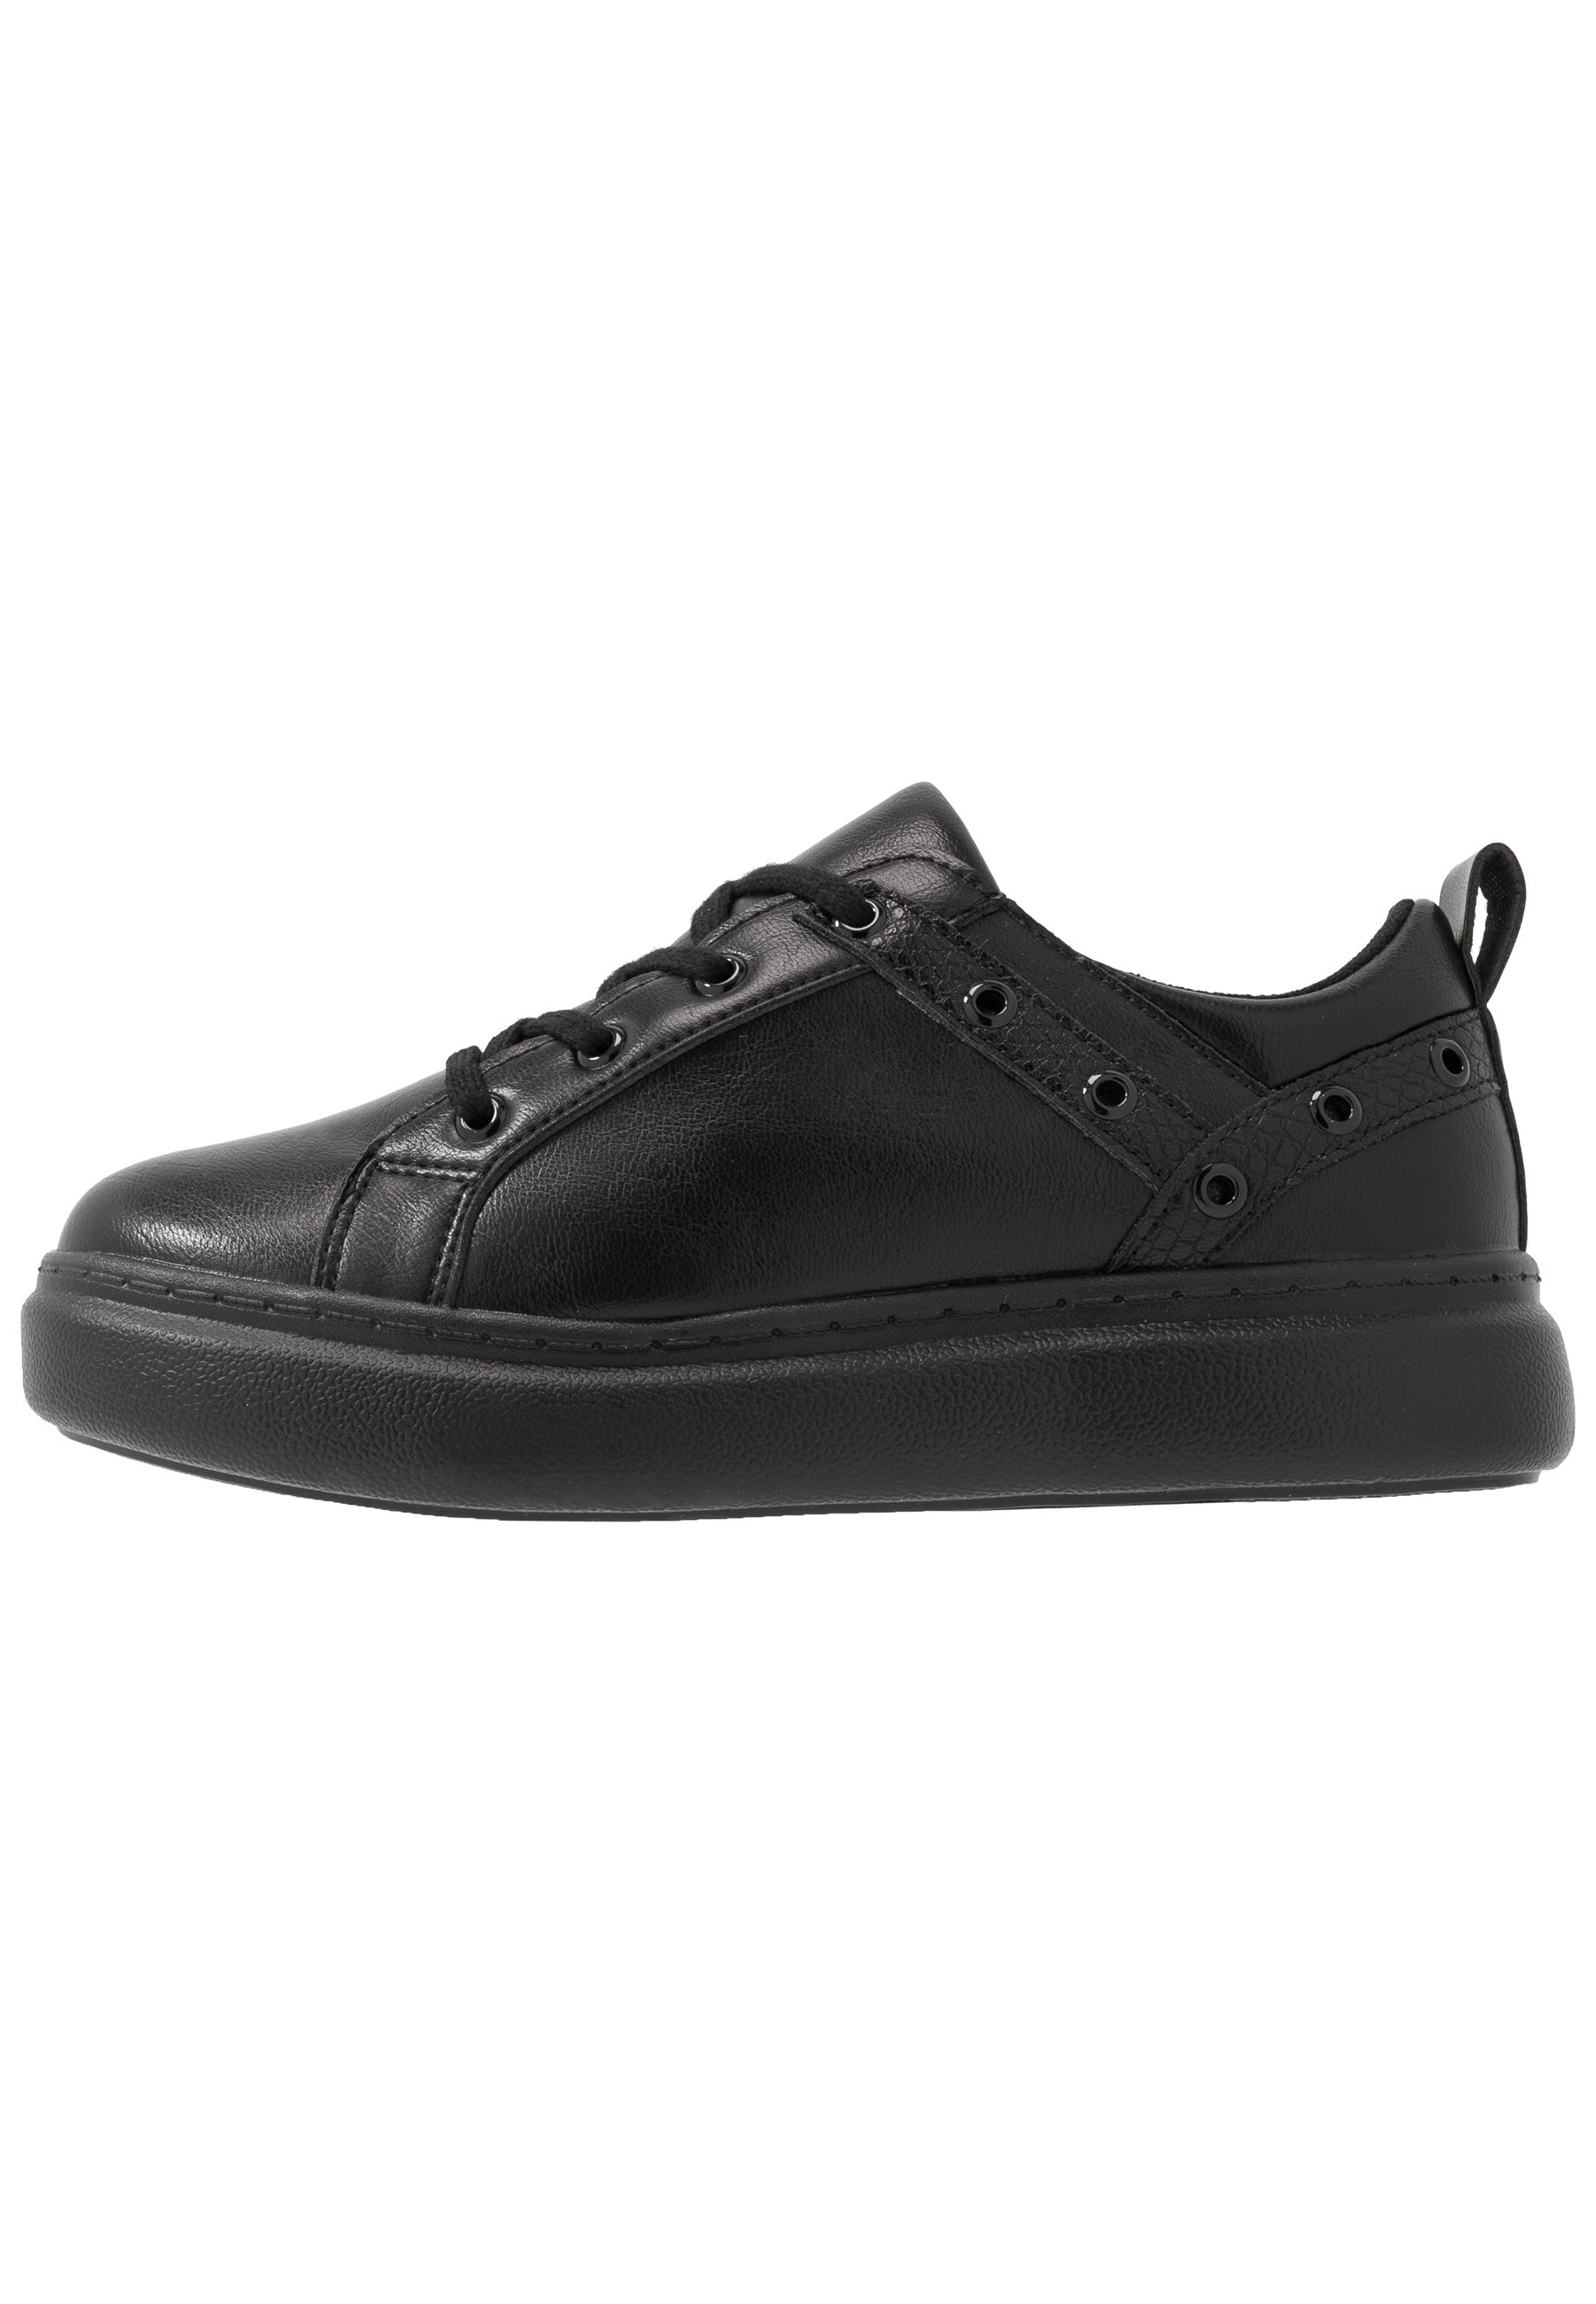 Lost Ink Wide Fit Eyelet Lace Up Trainer - Sneakers Basse Black 4pbpL